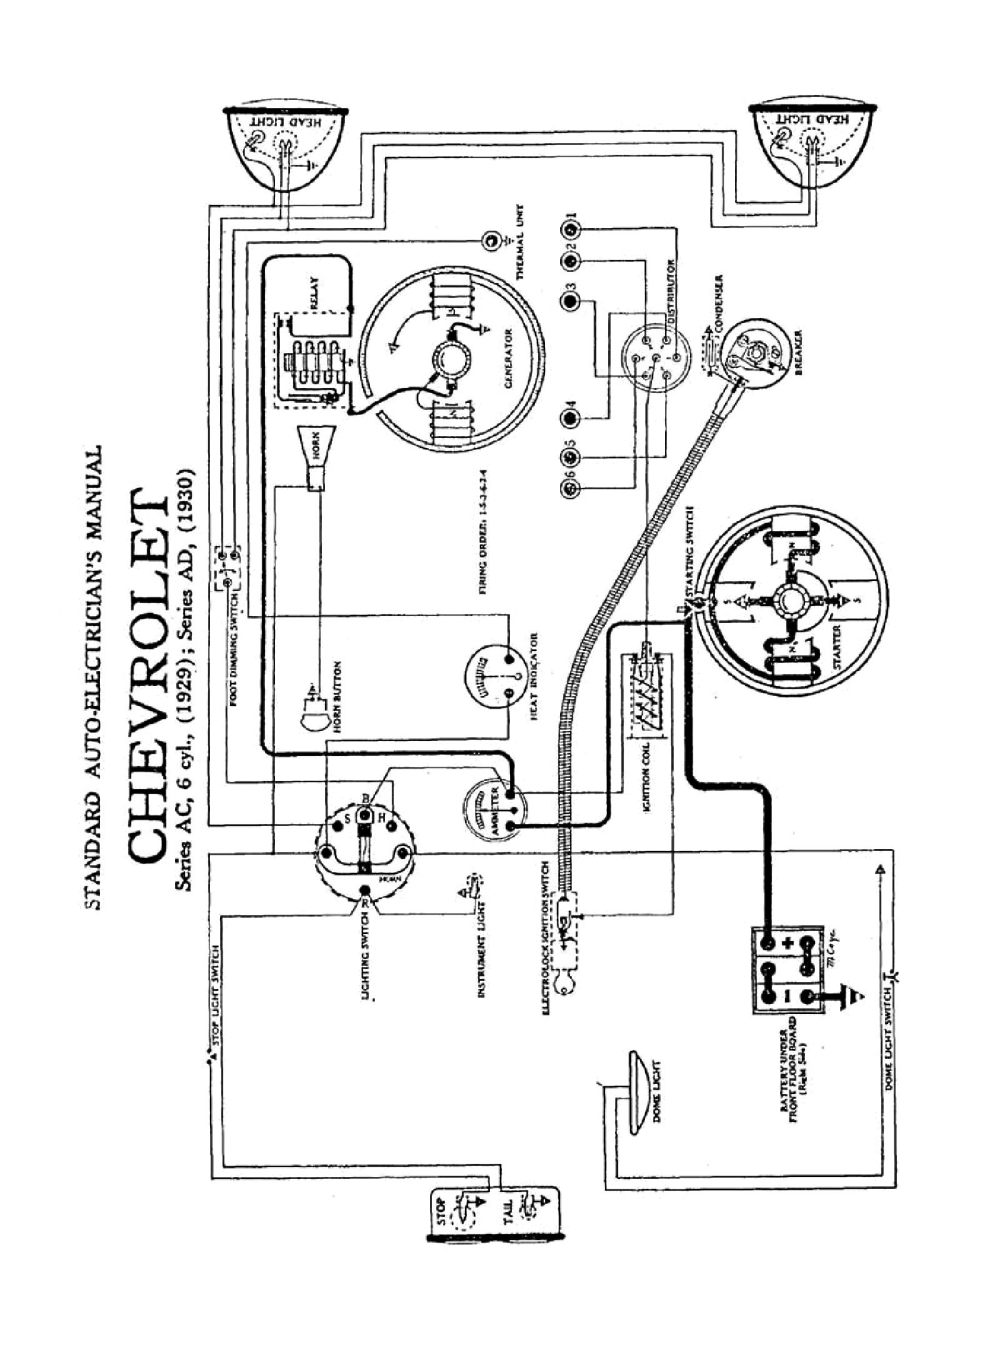 medium resolution of chevy wiring diagrams truck wiring 1948 1948 car wiring 1948 truck wiring 1949 1949 car